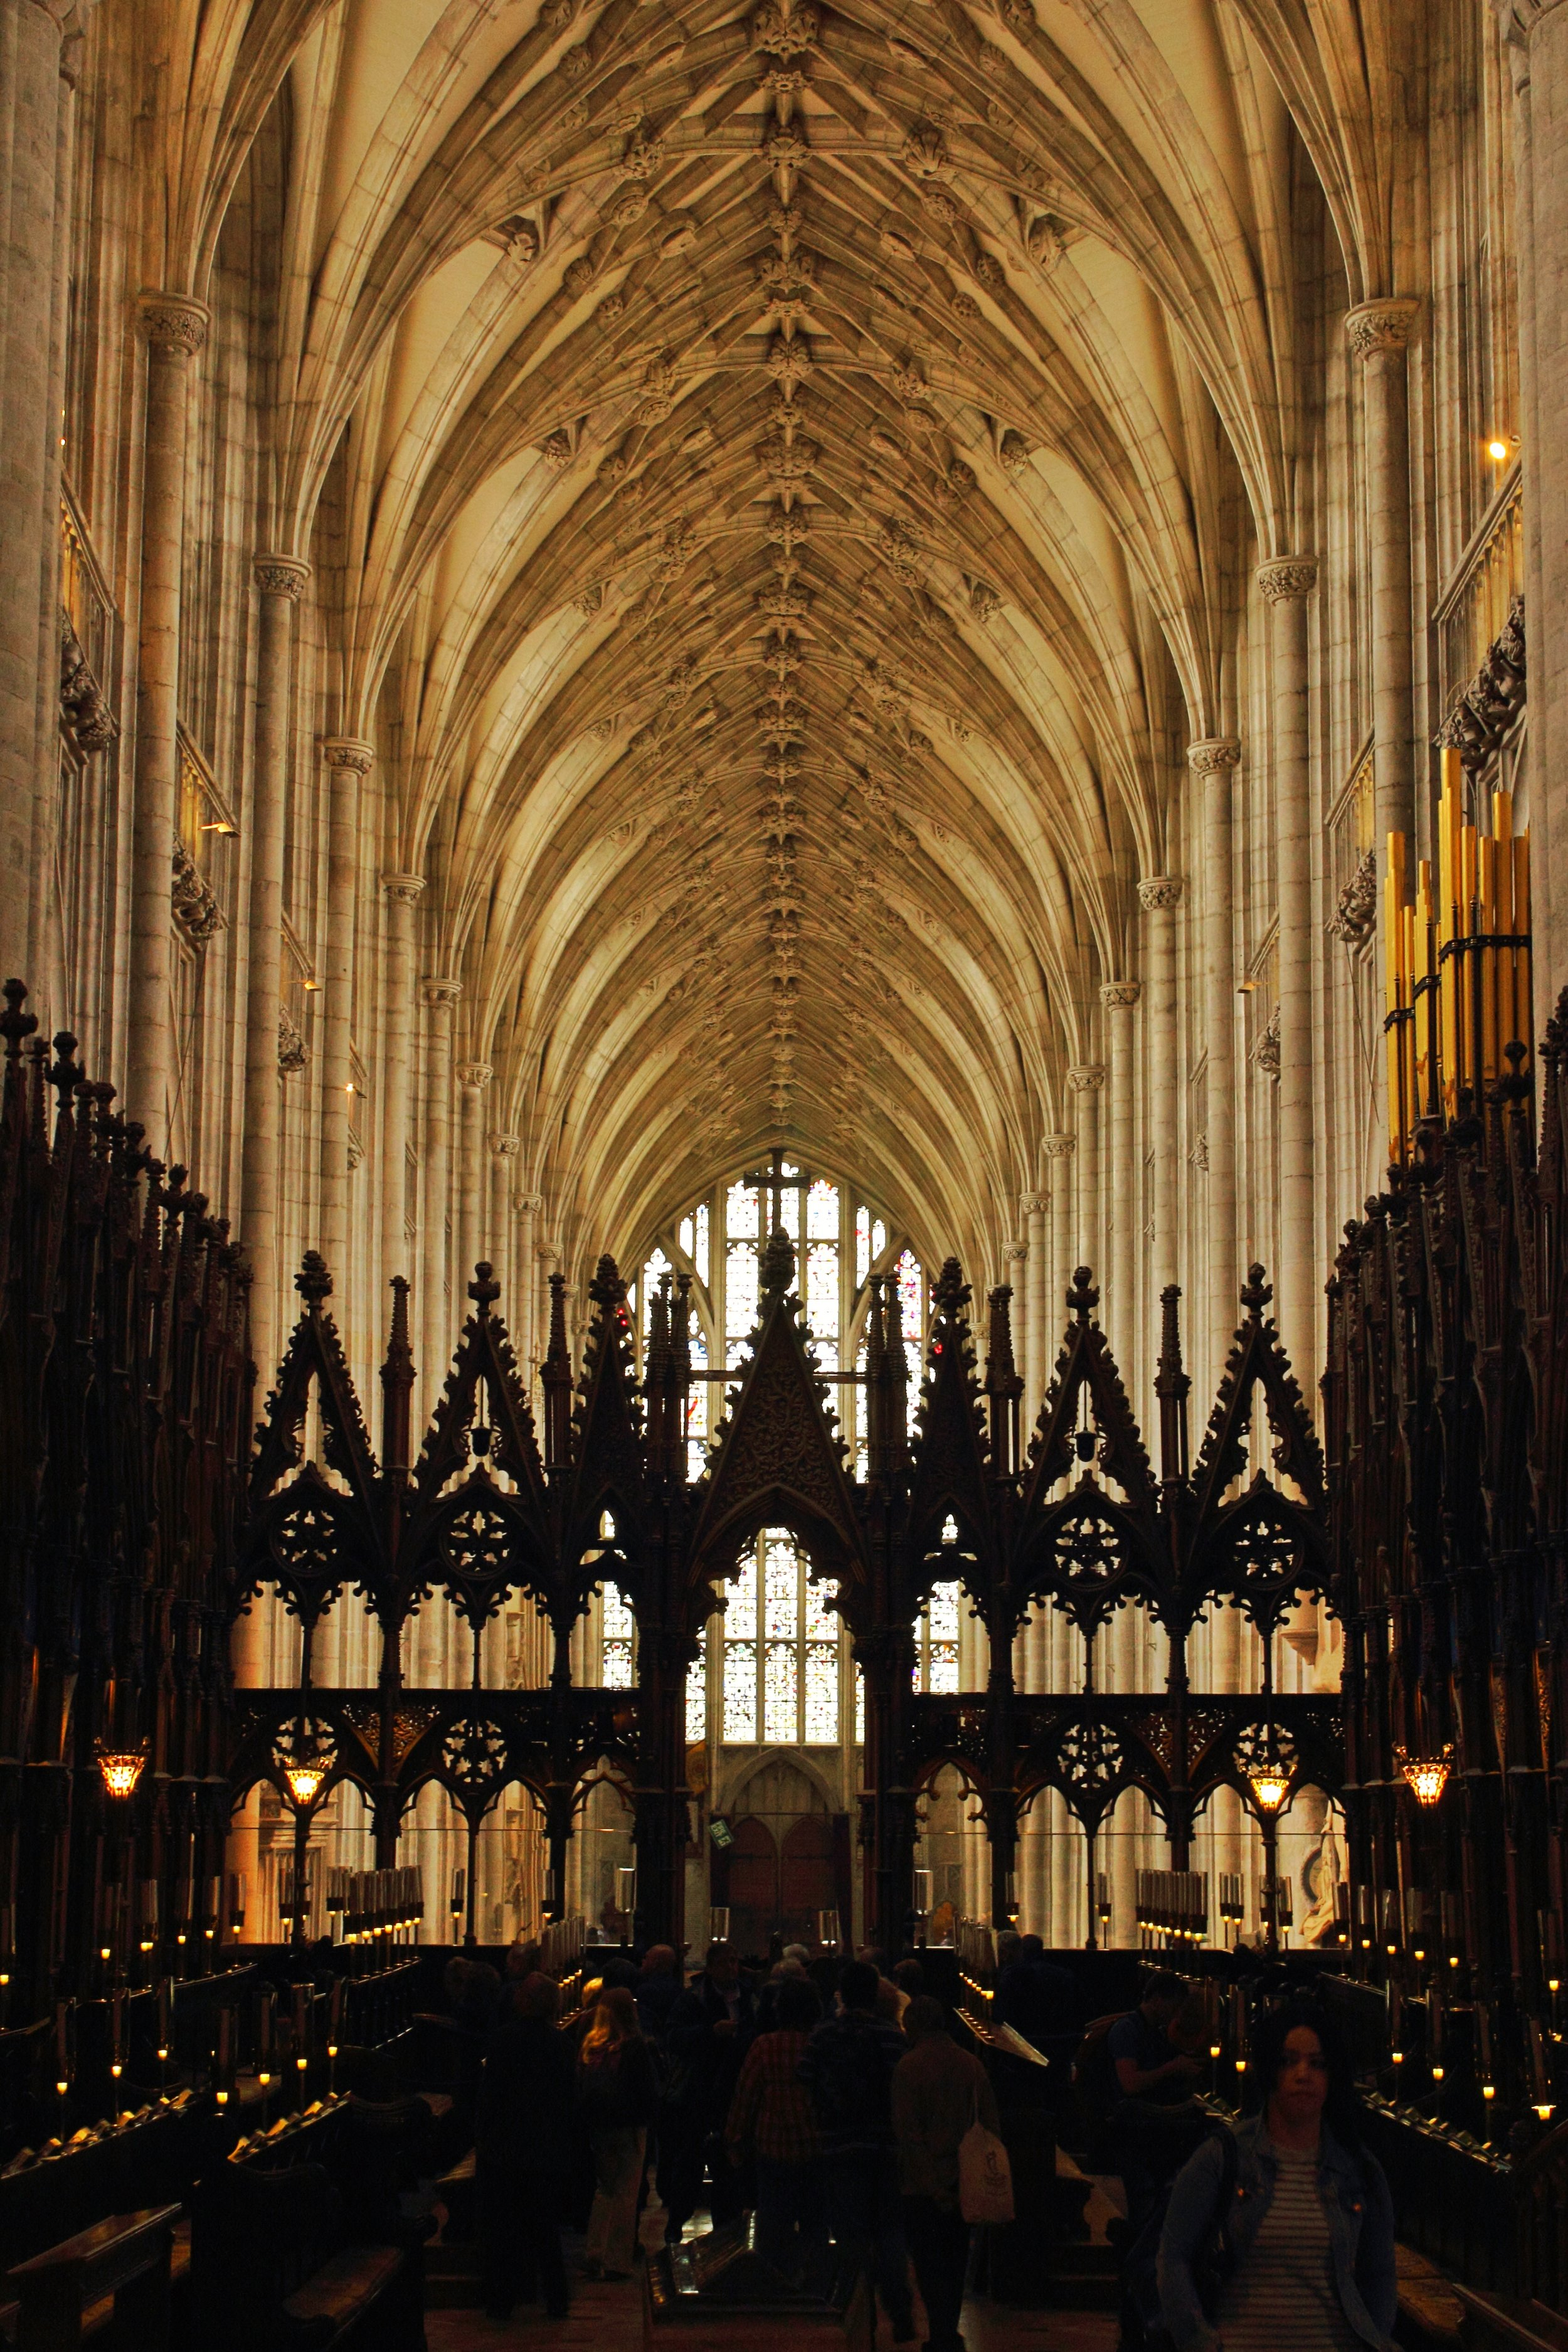 Winchester Cathedral is just a gem, and Jane Austen is buried there, as well.